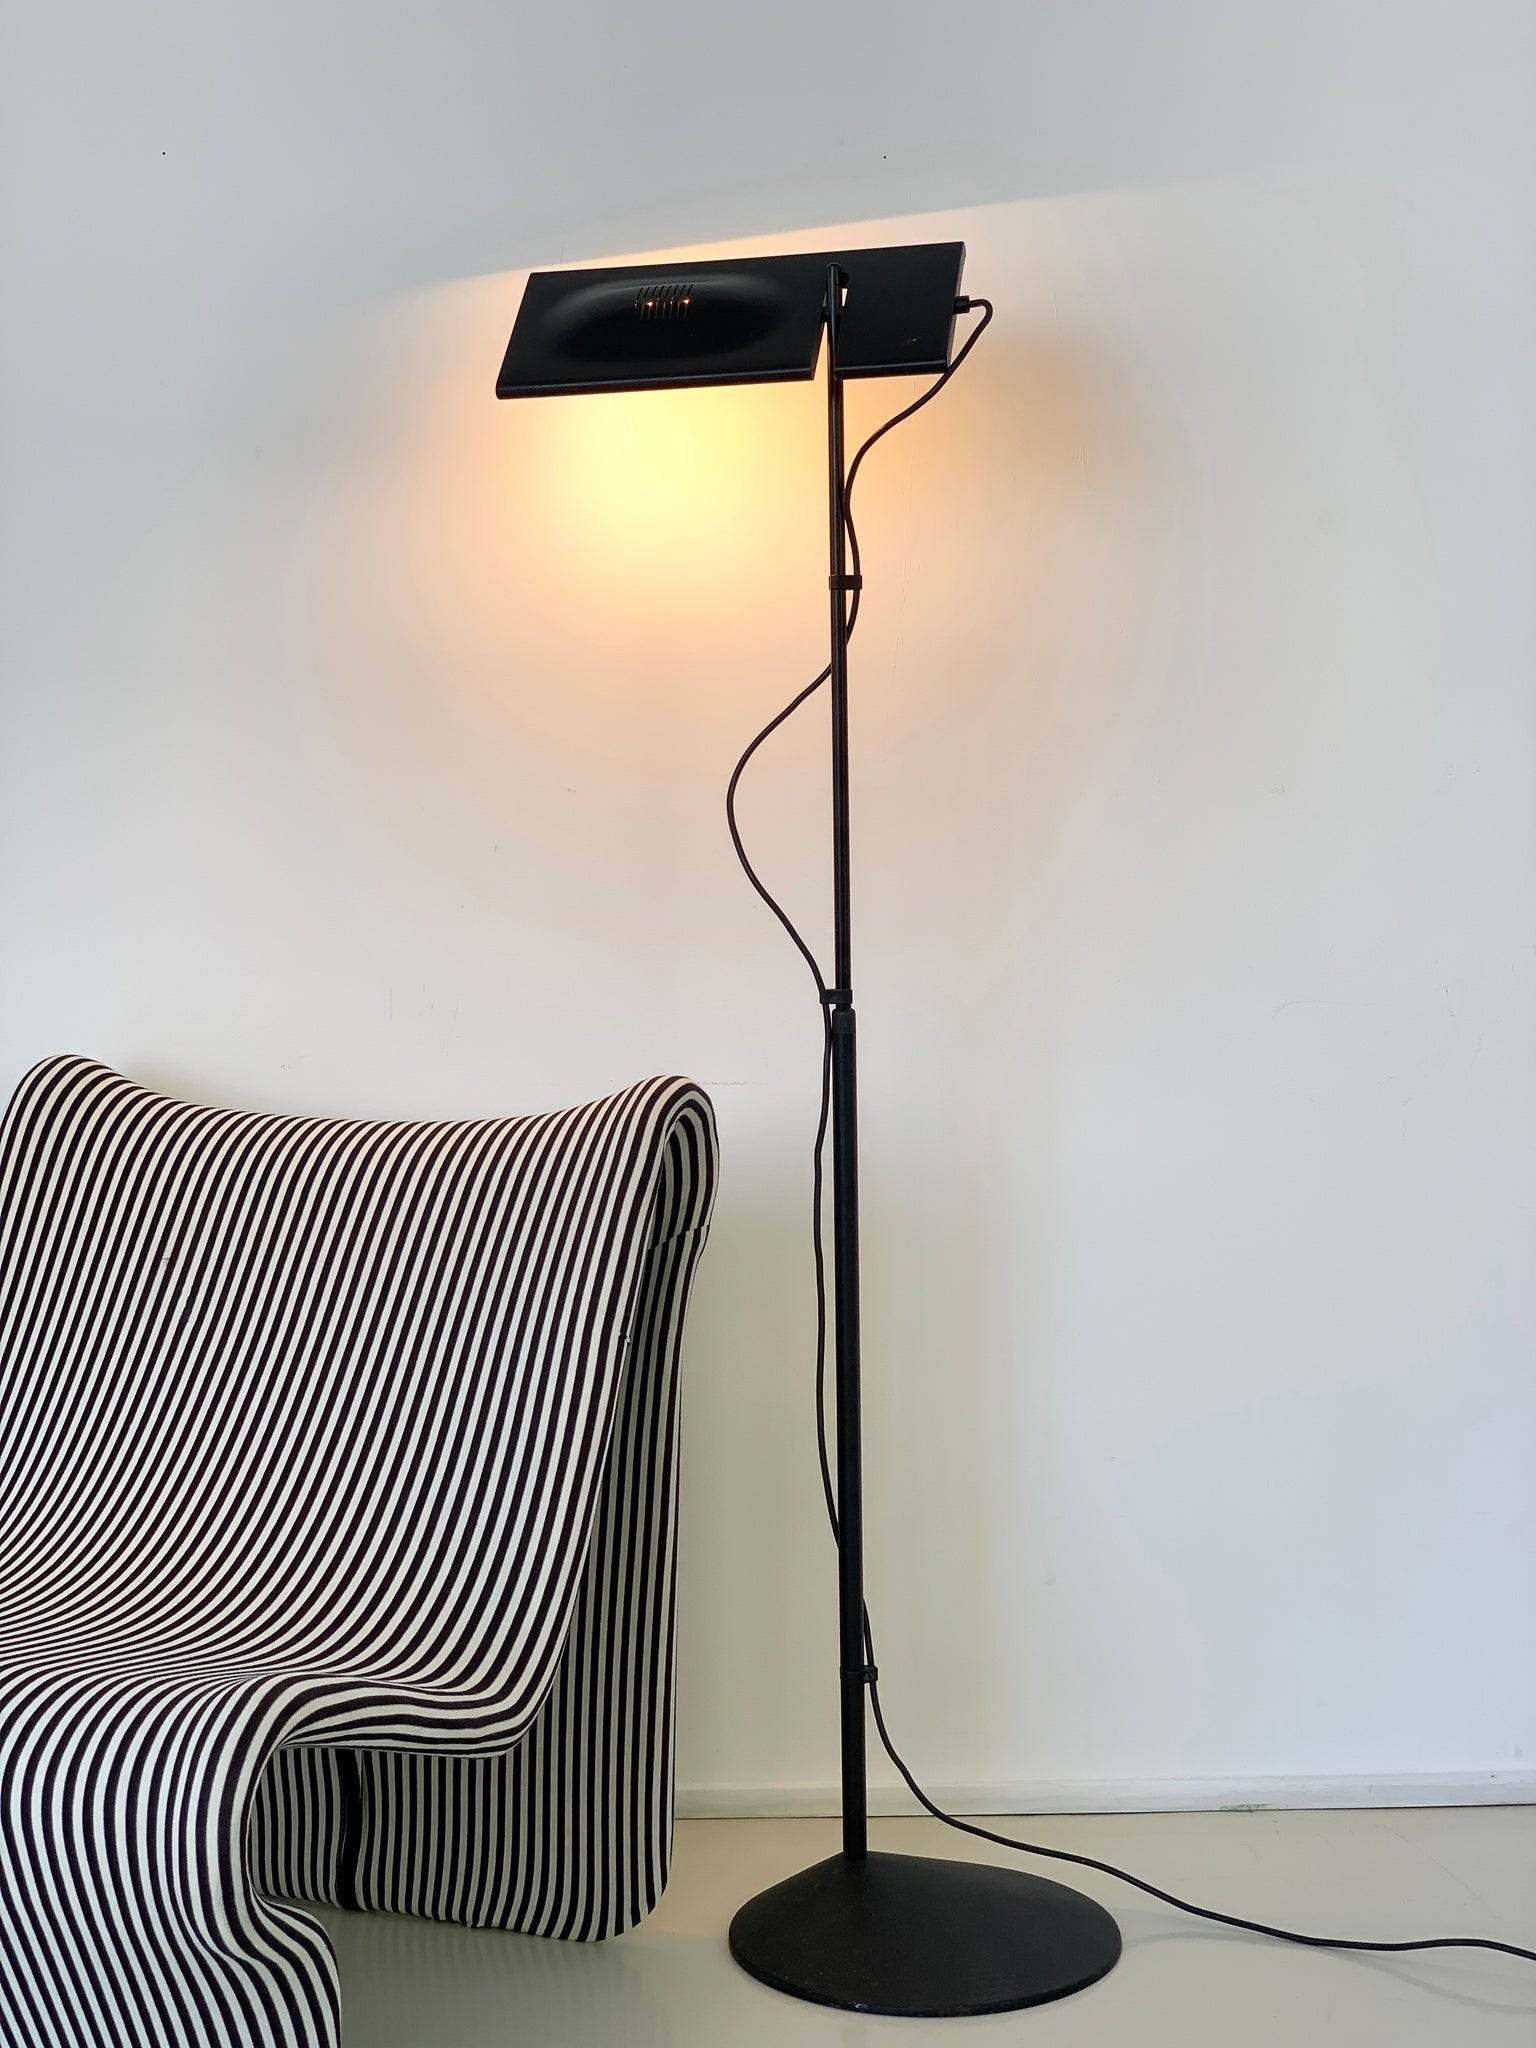 1980s Duna Terra Italian Paf Studio Lamp by Mario Barbaglia and Marco Colombo